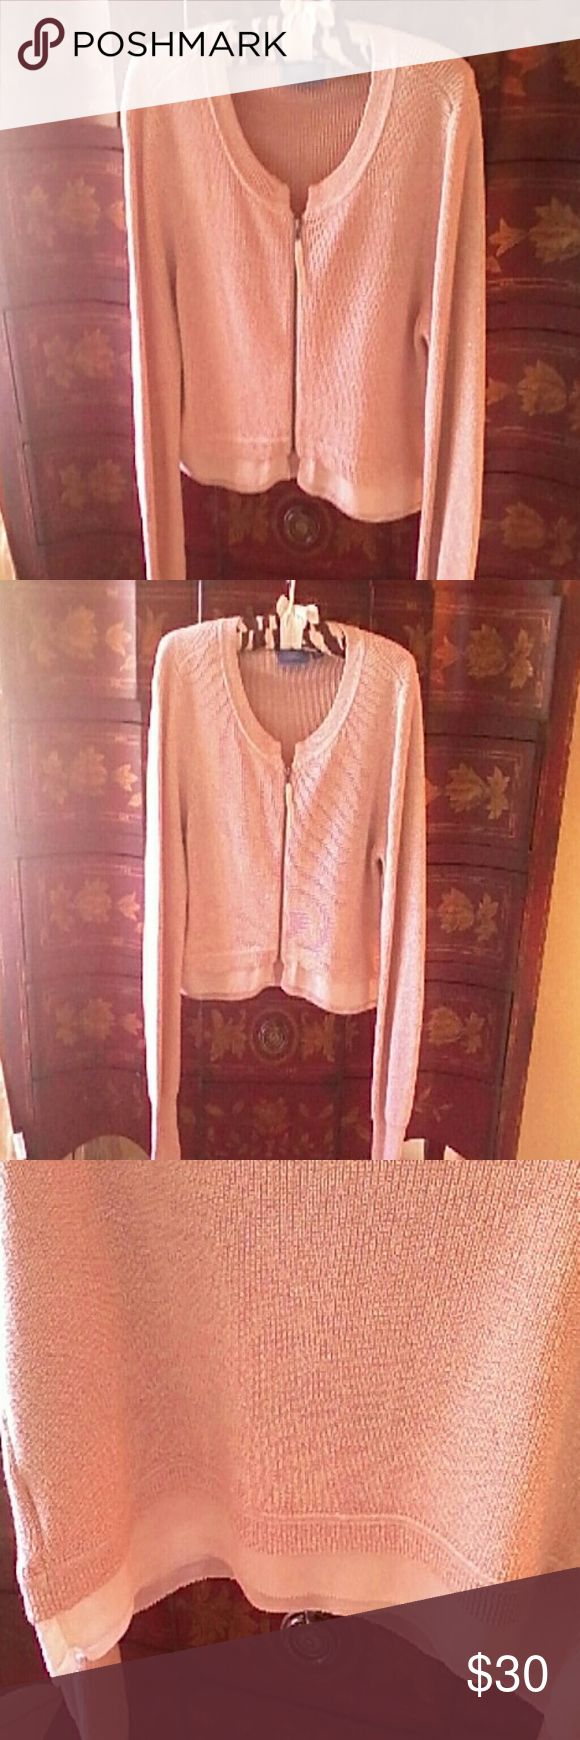 """SIMPLY VERA CROPPED CARDIGAN LG Very pretty classic Vera Wang Cardigan. I wore this one afternoon. Excellent condition. Pix appear long. From top of shoulder seam to bottom of chiffon hem measures 28"""". I would call the color creamy beige. Shoulder to hem 20"""". Smoke and pet free home. Vera Wang Sweaters Cardigans"""